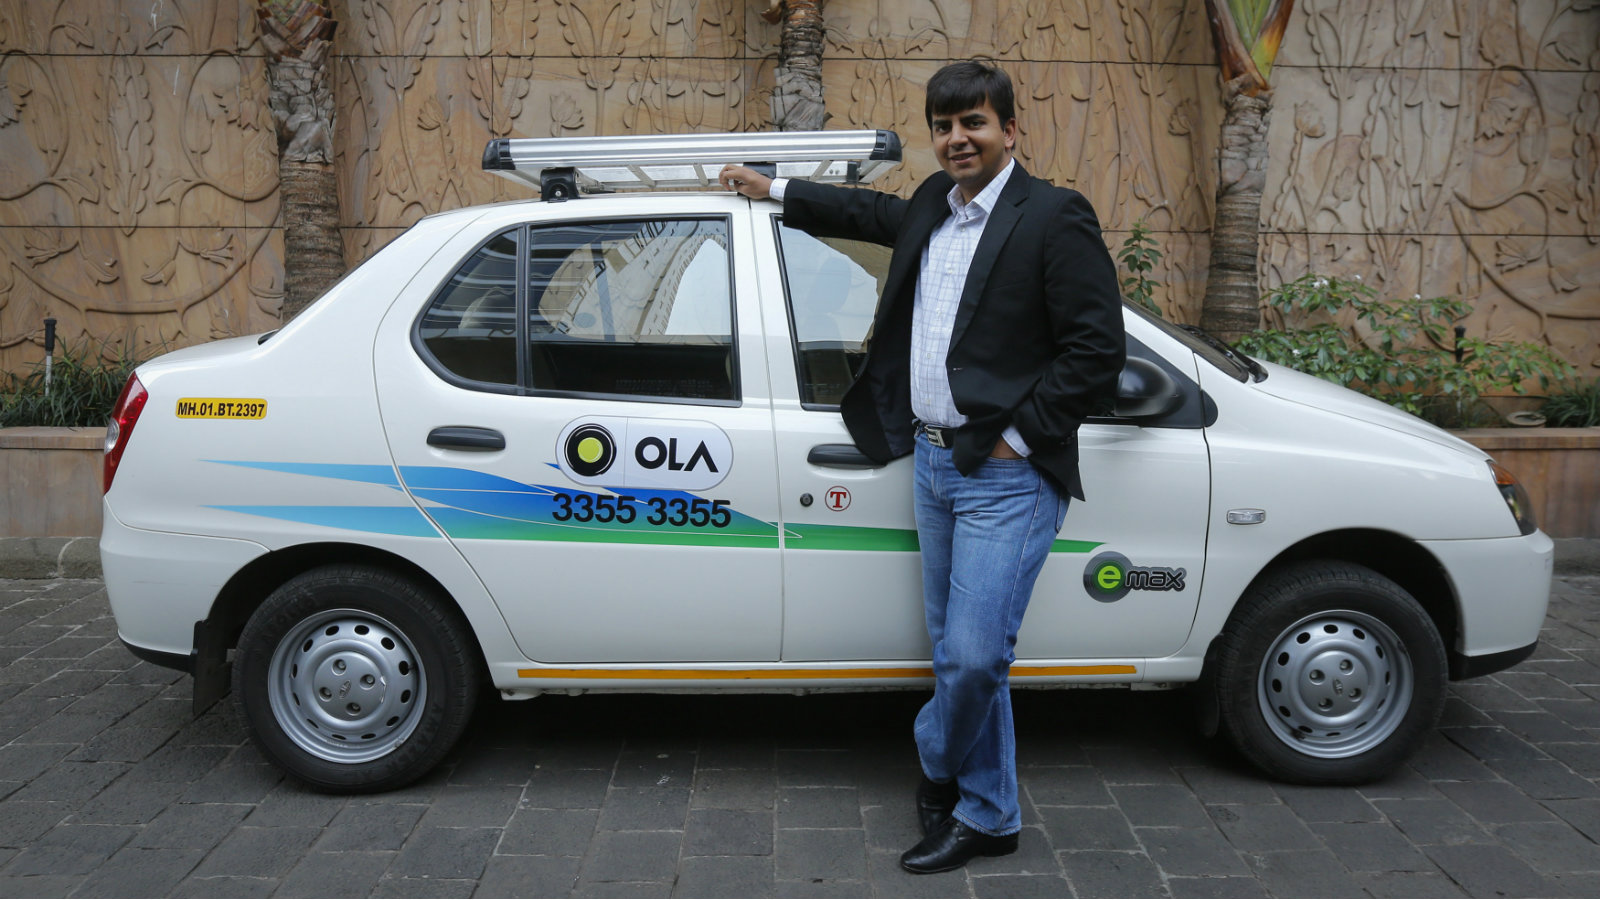 Bhavish Aggarwal, CEO and co-founder of Ola, an app-based cab service provider, poses in front of an Ola cab in Mumbai March 3, 2015. Ola, India's largest online taxi business, will more than double its reach by expanding into 200 cities after this week's acquisition of rival TaxiForSure handed it control of more than 80 percent of the country's organised cab market. The company aims to capitalise on India's low level car ownership, with urbanites deterred by both the expense and the lack of parking space, its 29-year-old Chief Executive Aggarwal told Reuters on Tuesday.